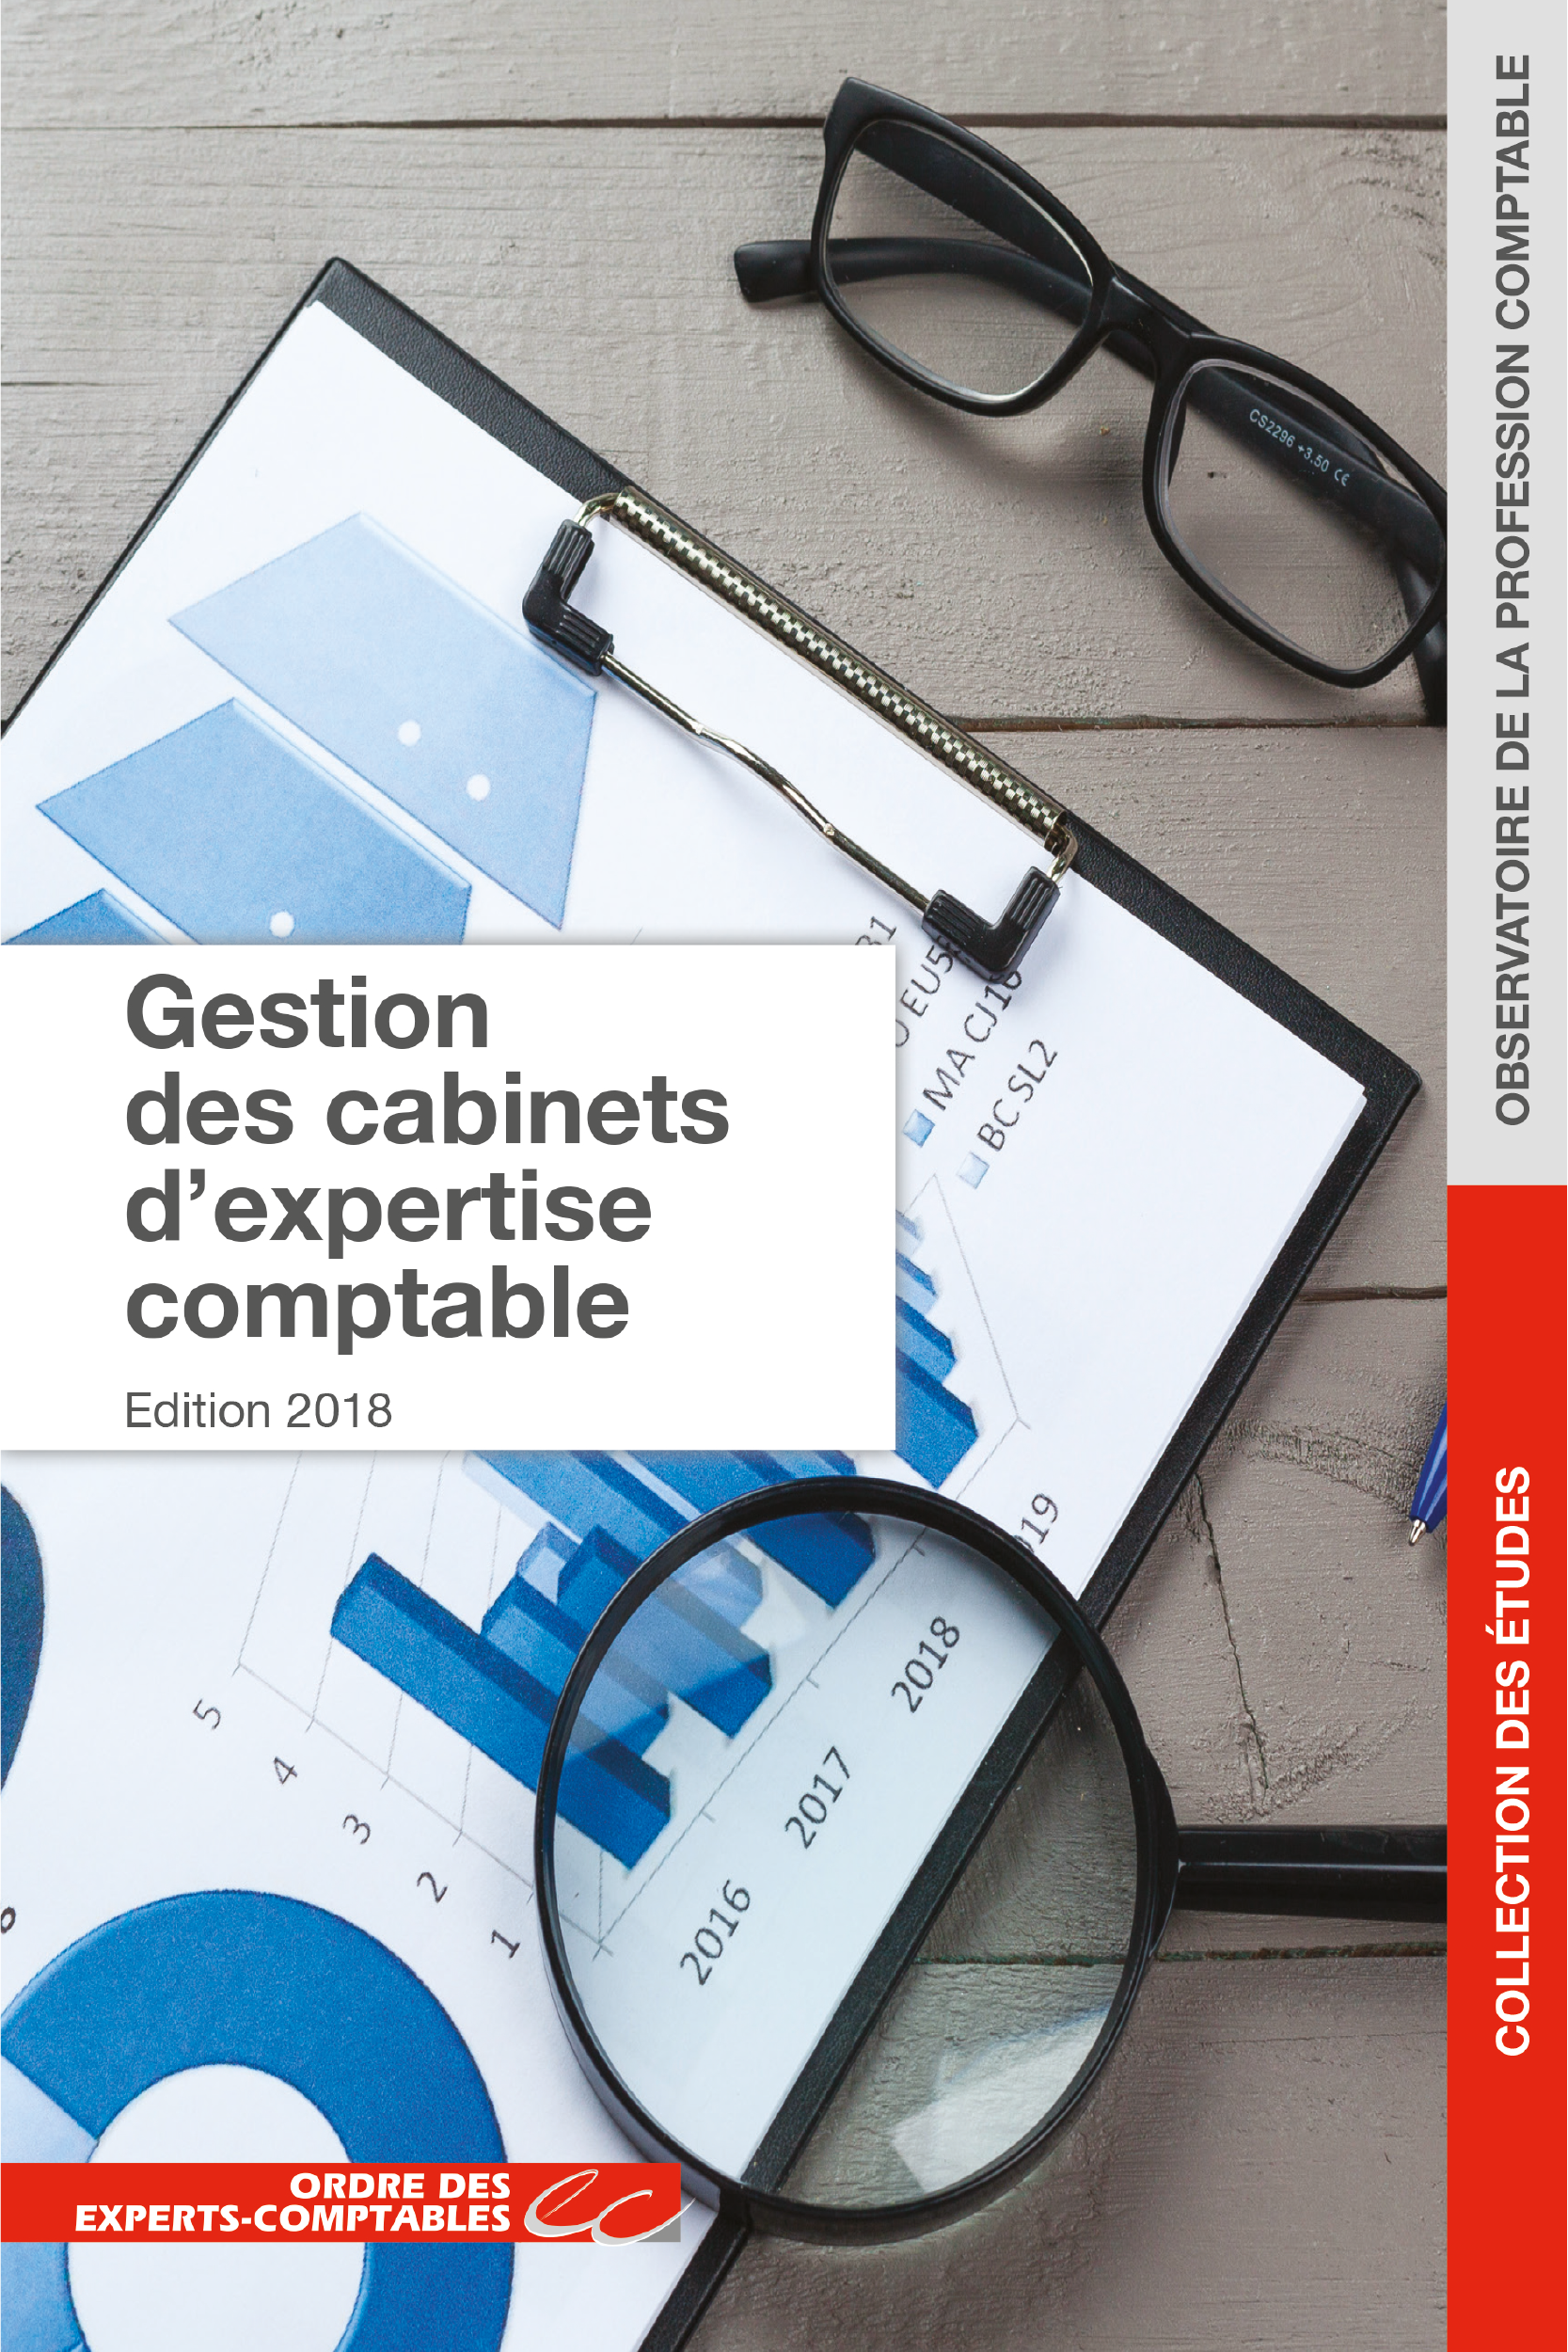 Gestion des cabinets d'expertise comptable